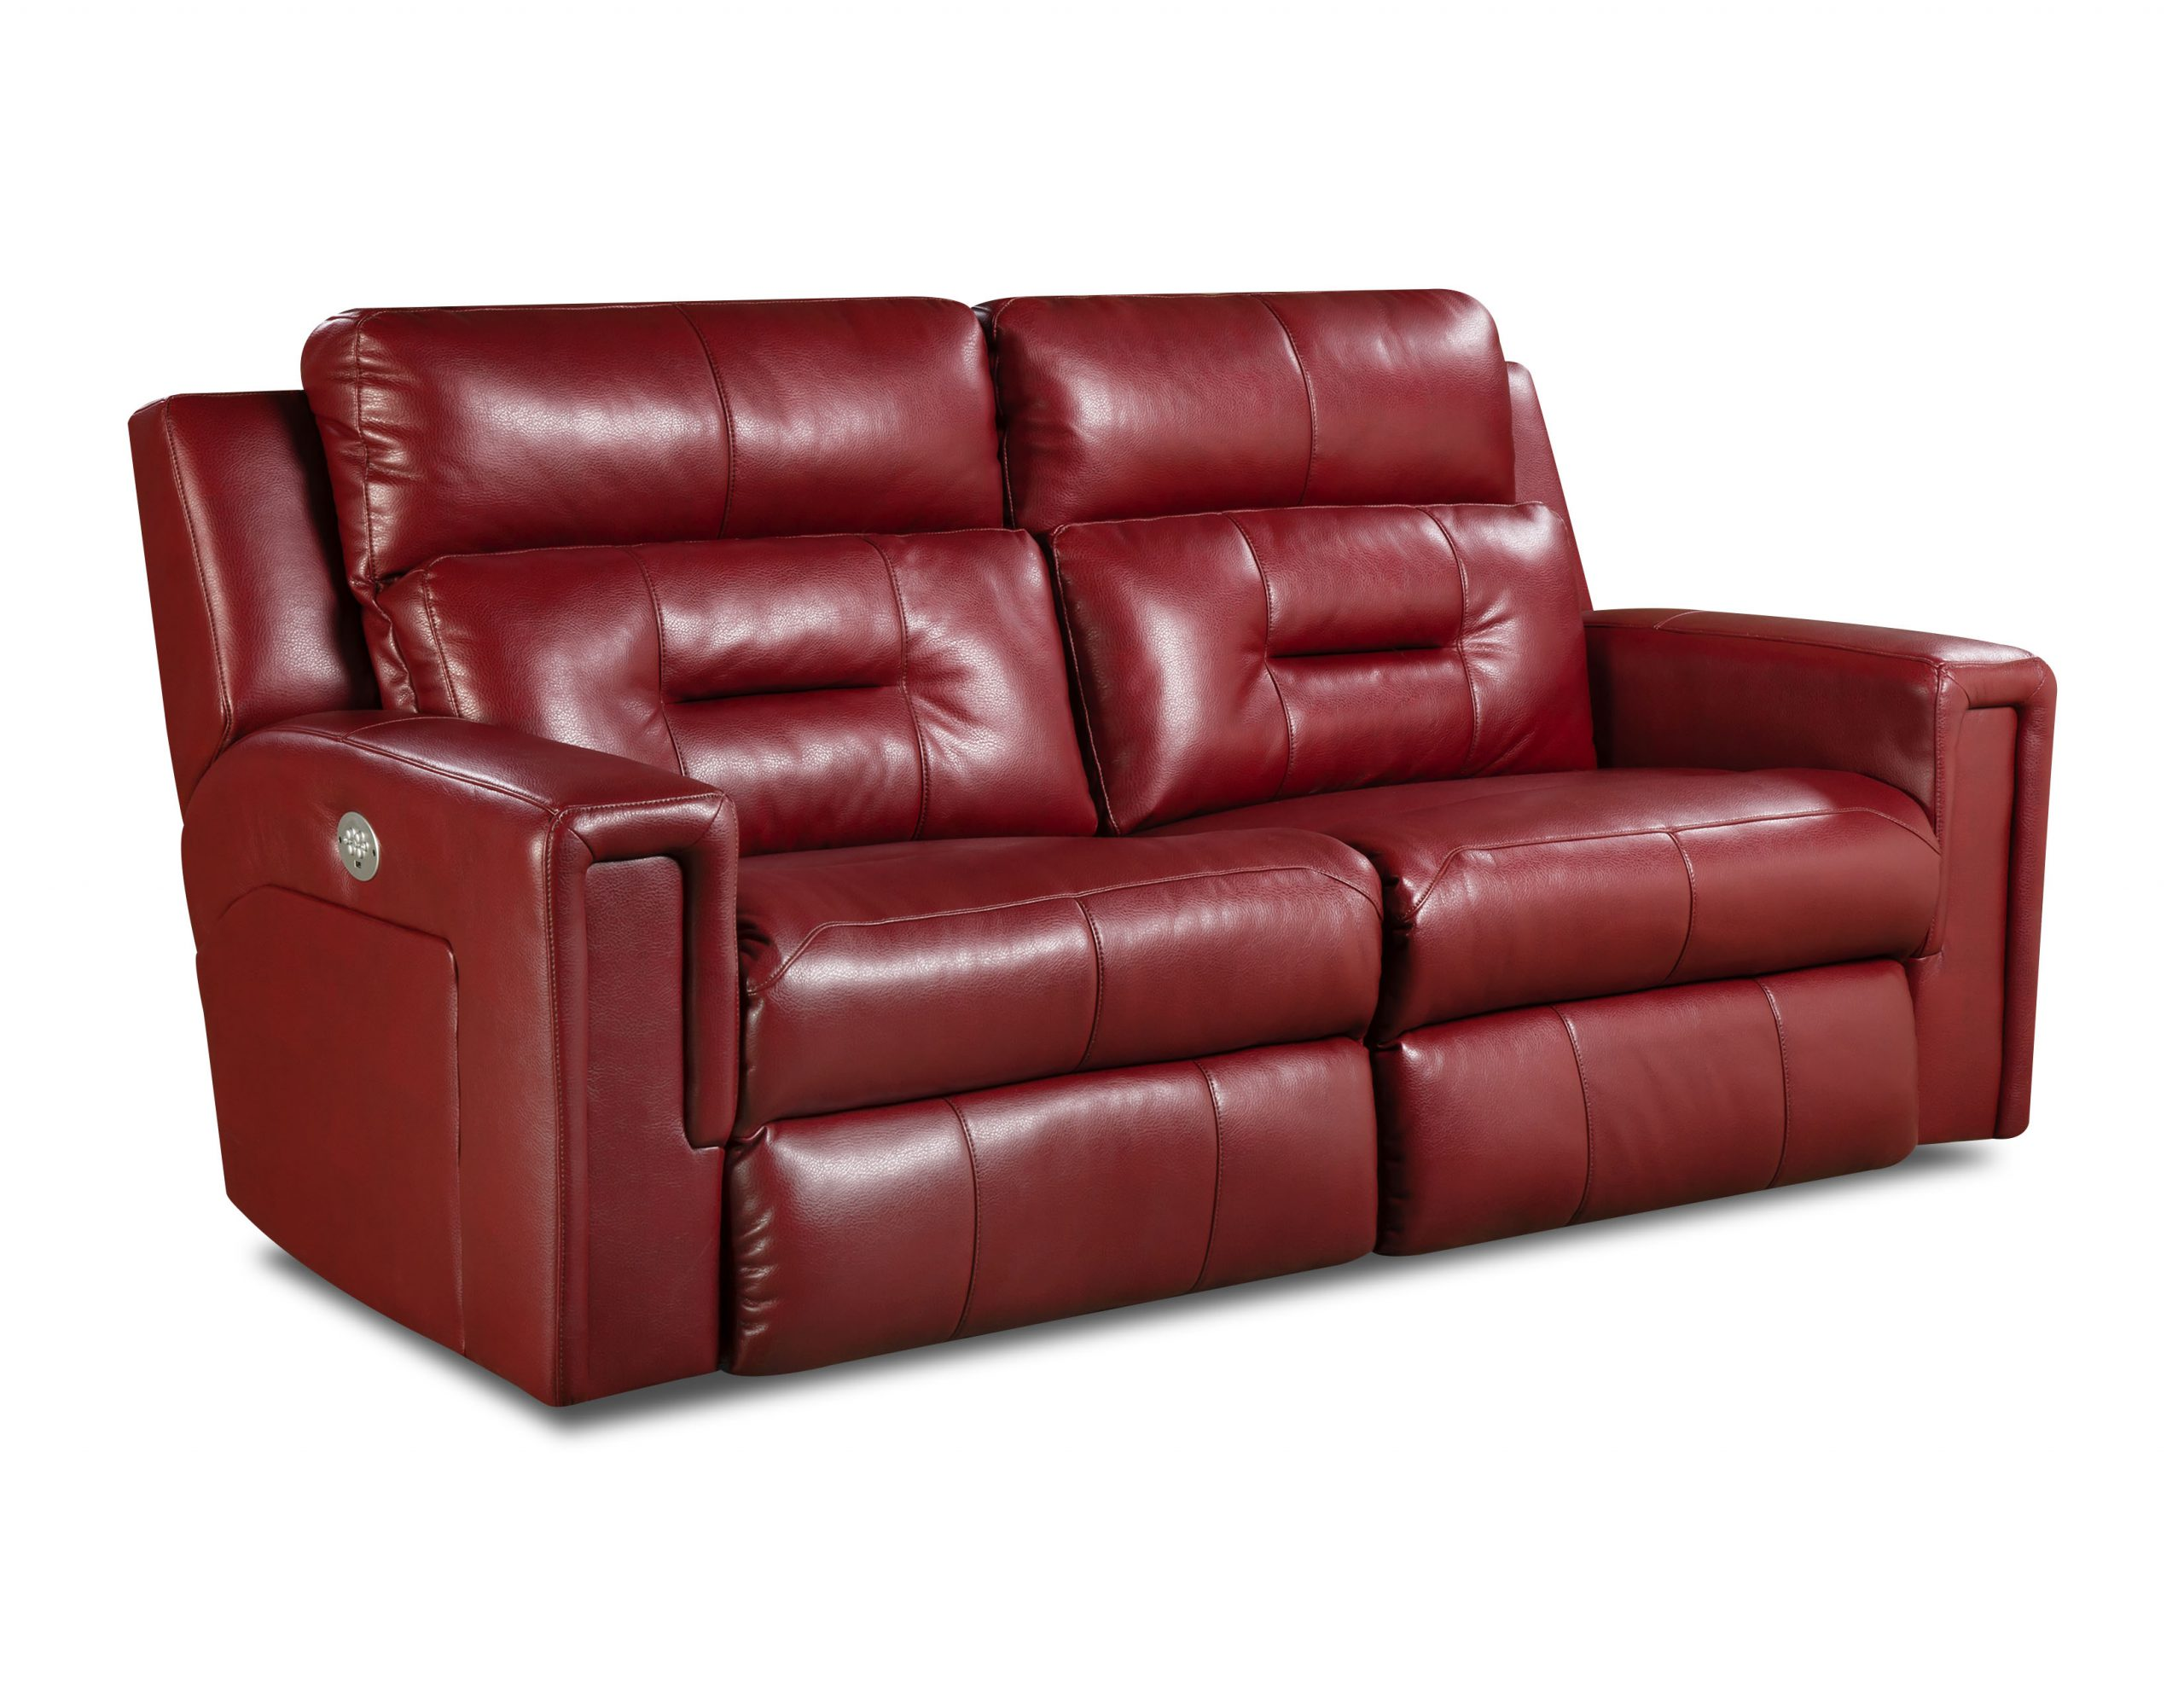 866-excel-sofa-sweep-in-263-11-wagyu-crimson-scaled